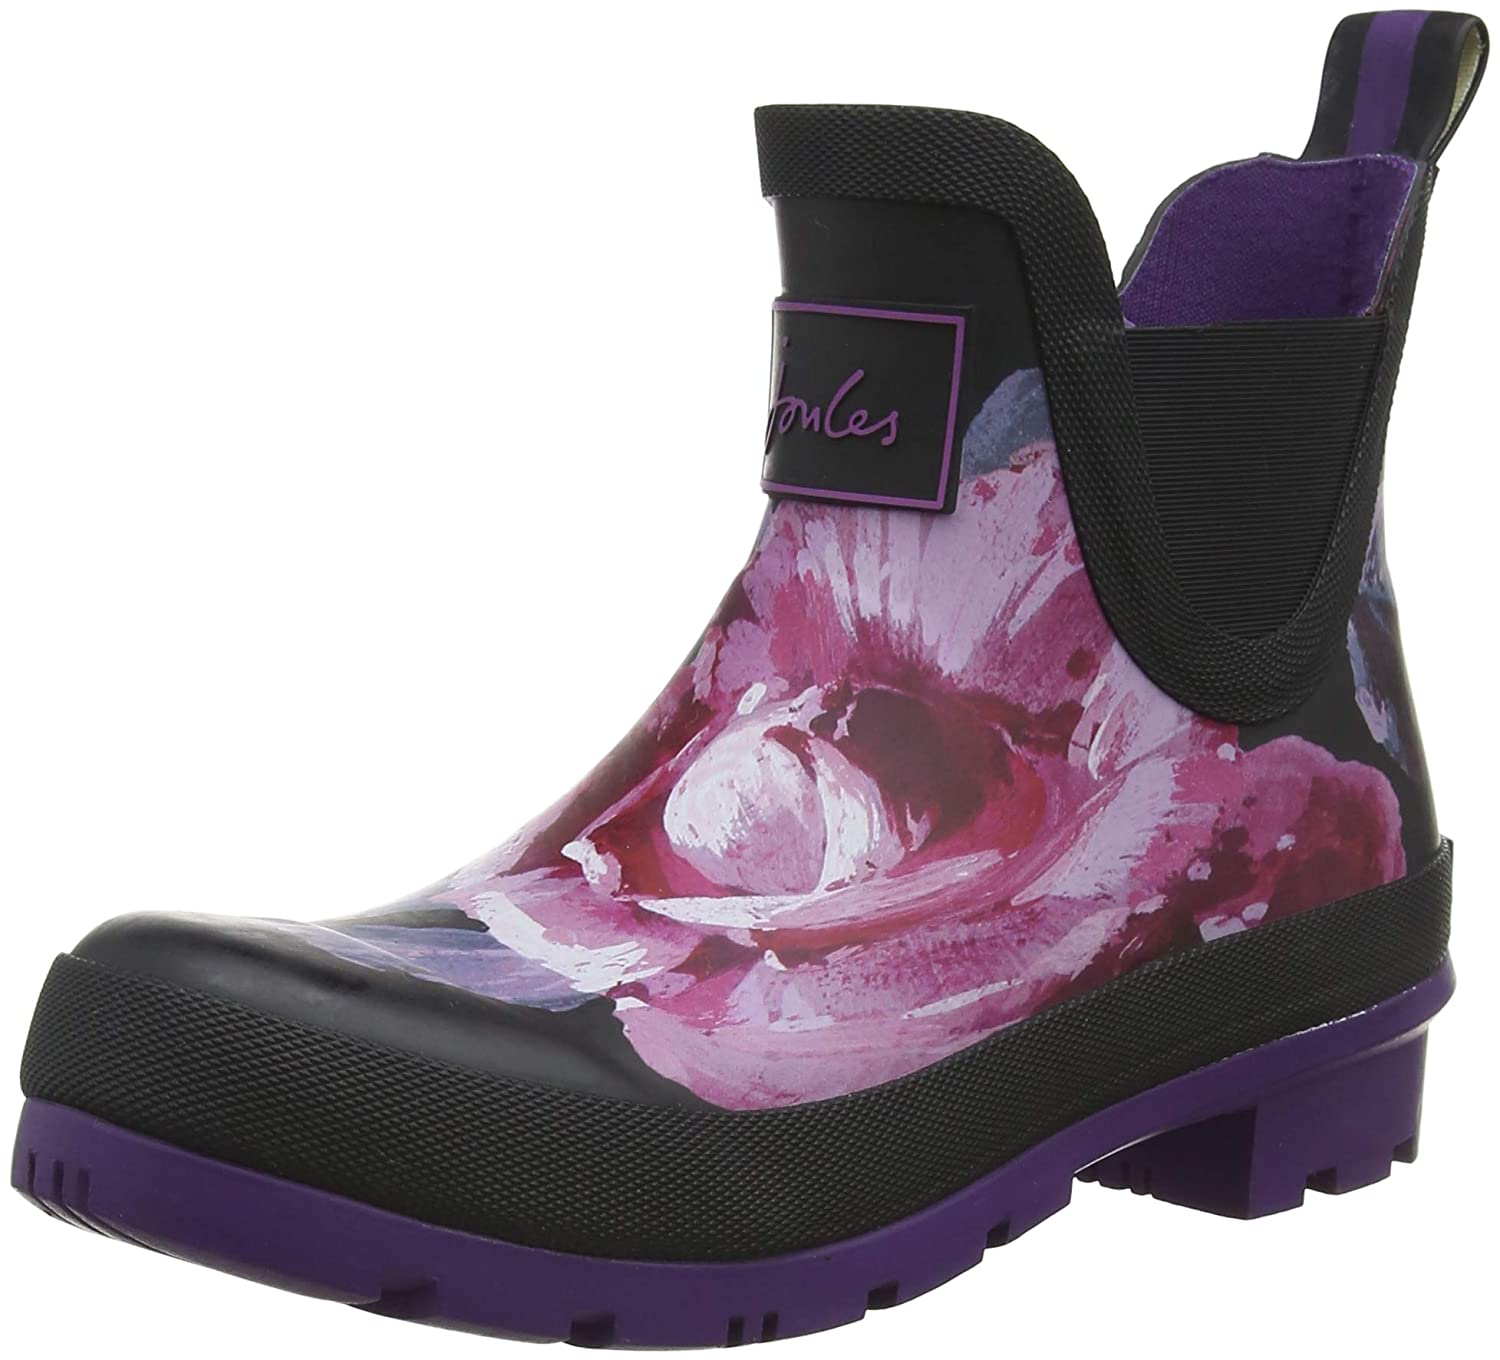 Joules Wellibob, Bottes Classiques Cheville Femme Noir Bottes (Black Femme Winter Classiques Floral Blkwtfl) a6b9cb1 - therethere.space